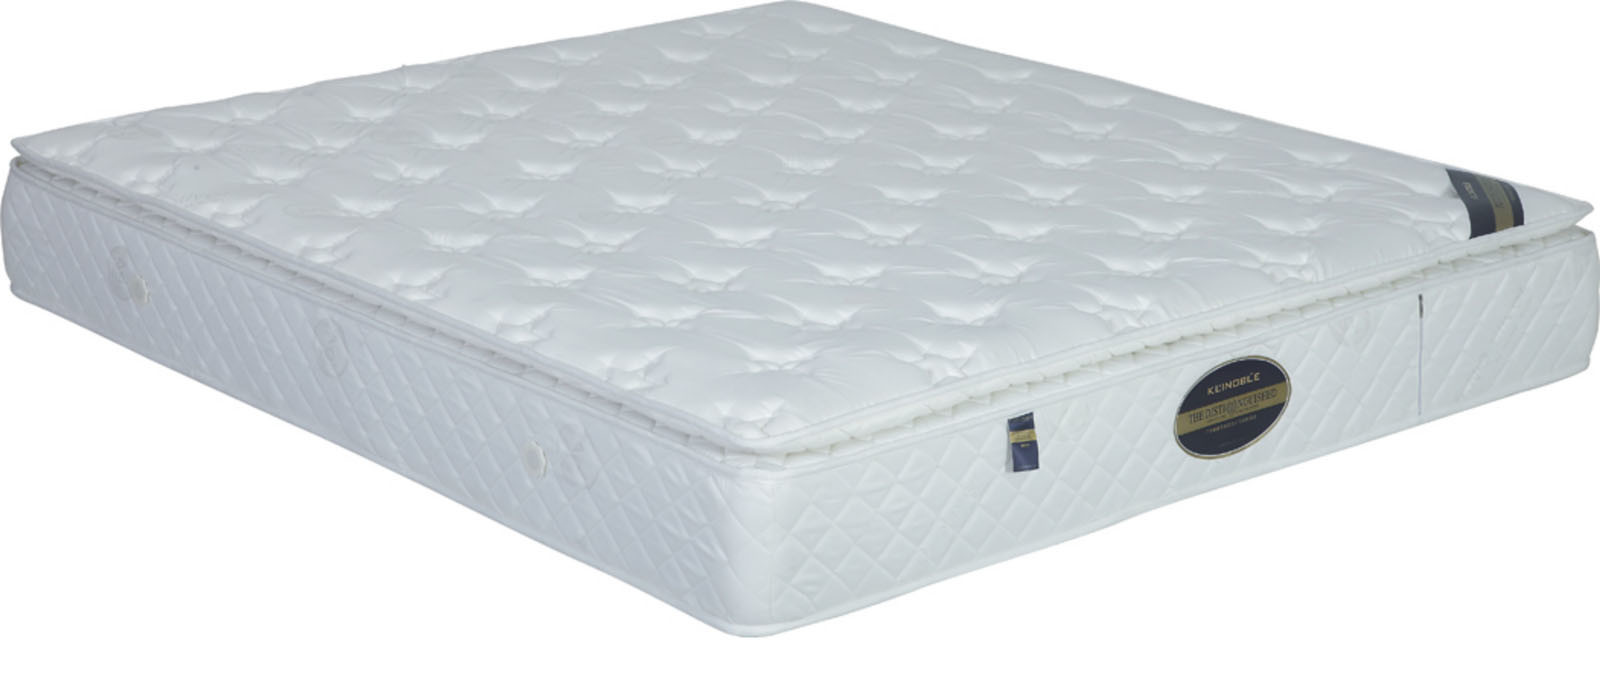 China Memory Foam Mattress Latex Mattress Foam Mattress